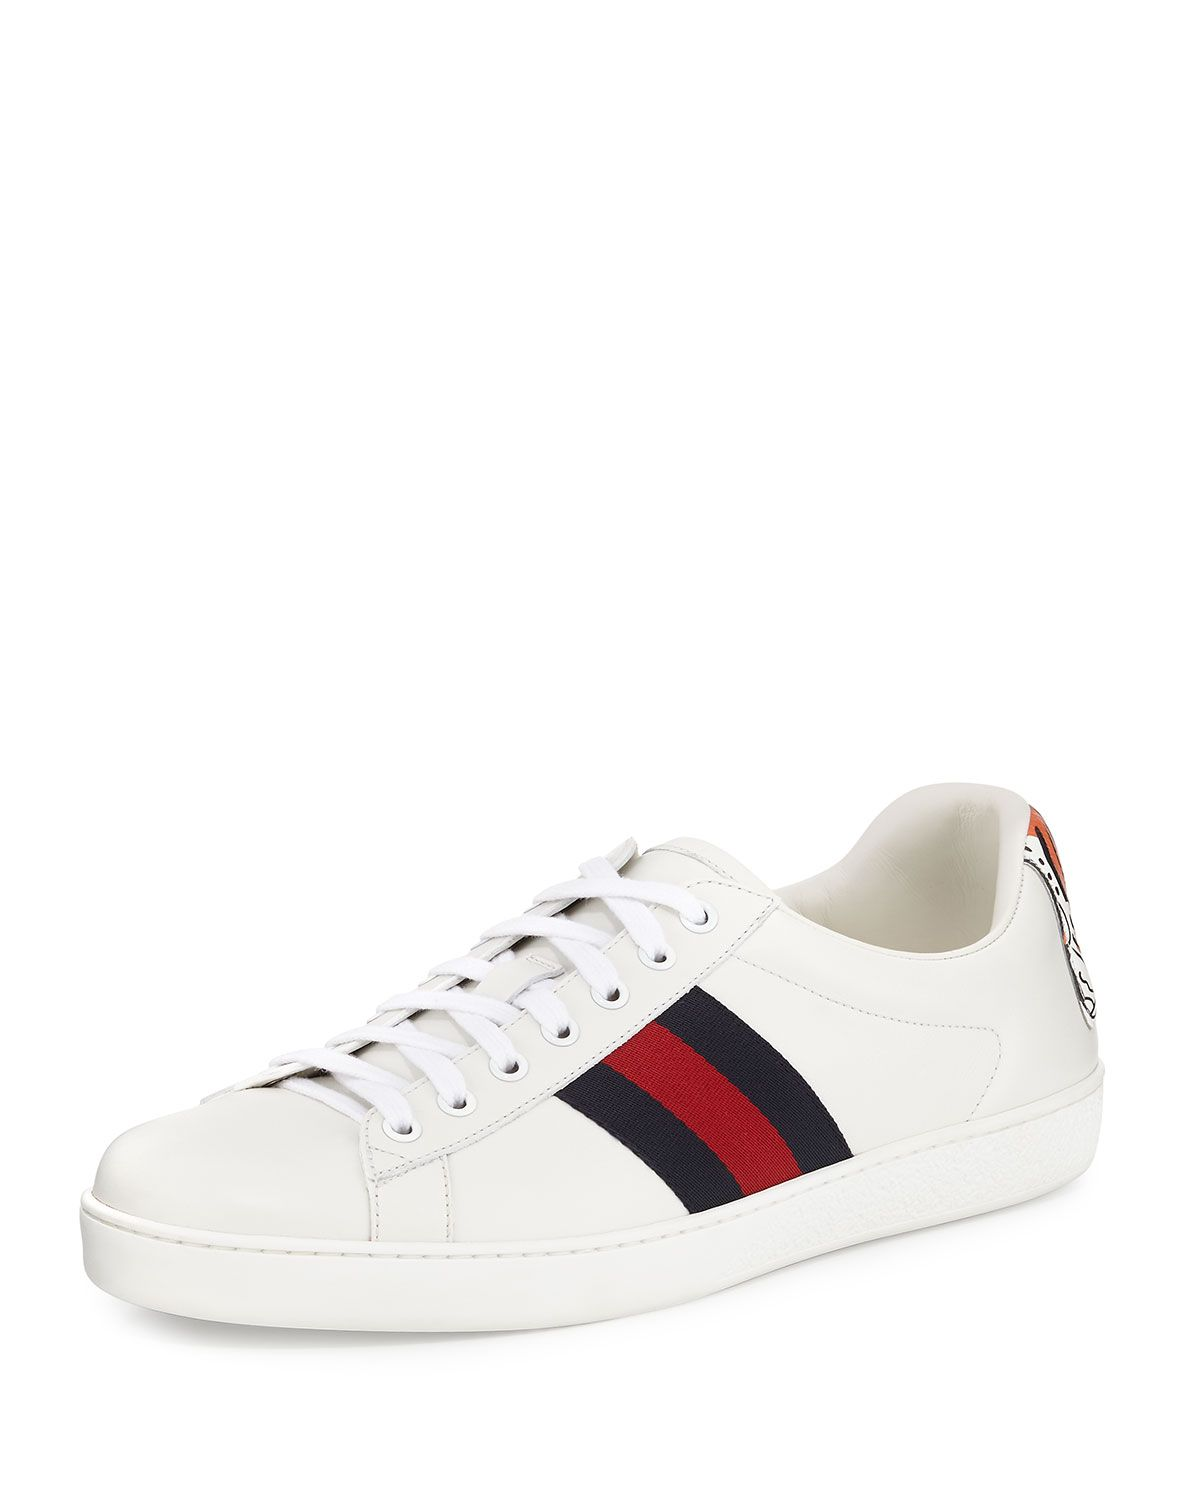 108911a0b New Ace Hanging Tiger Leather Low-Top Sneaker White | S-H-O-E-gasm ...